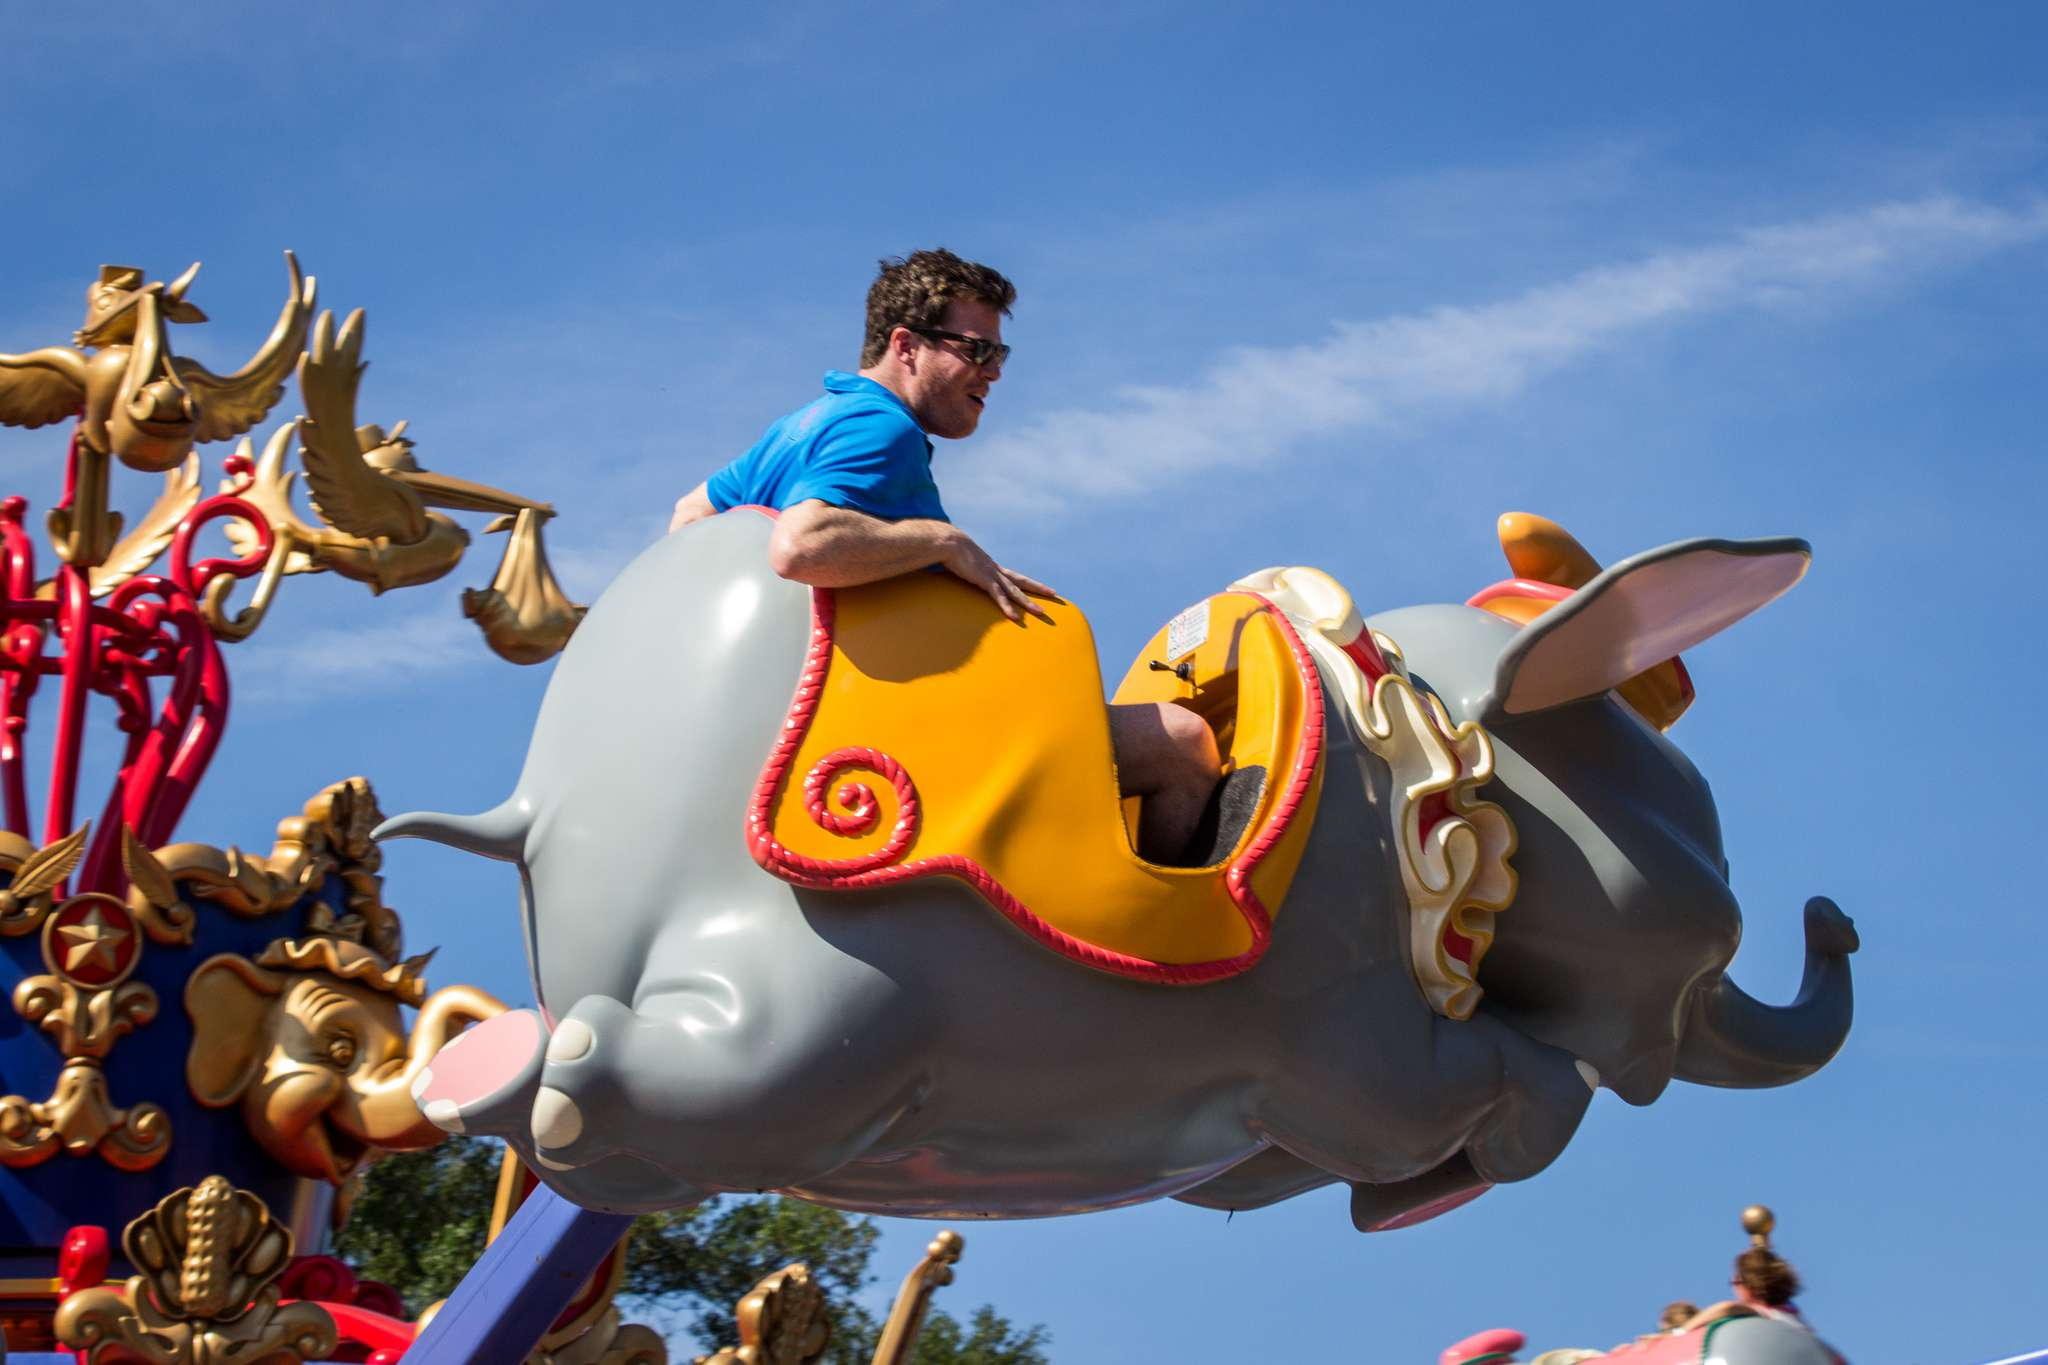 A look at Dumbo the Flying Elephant in Fantasyland at the Magic Kingdom.